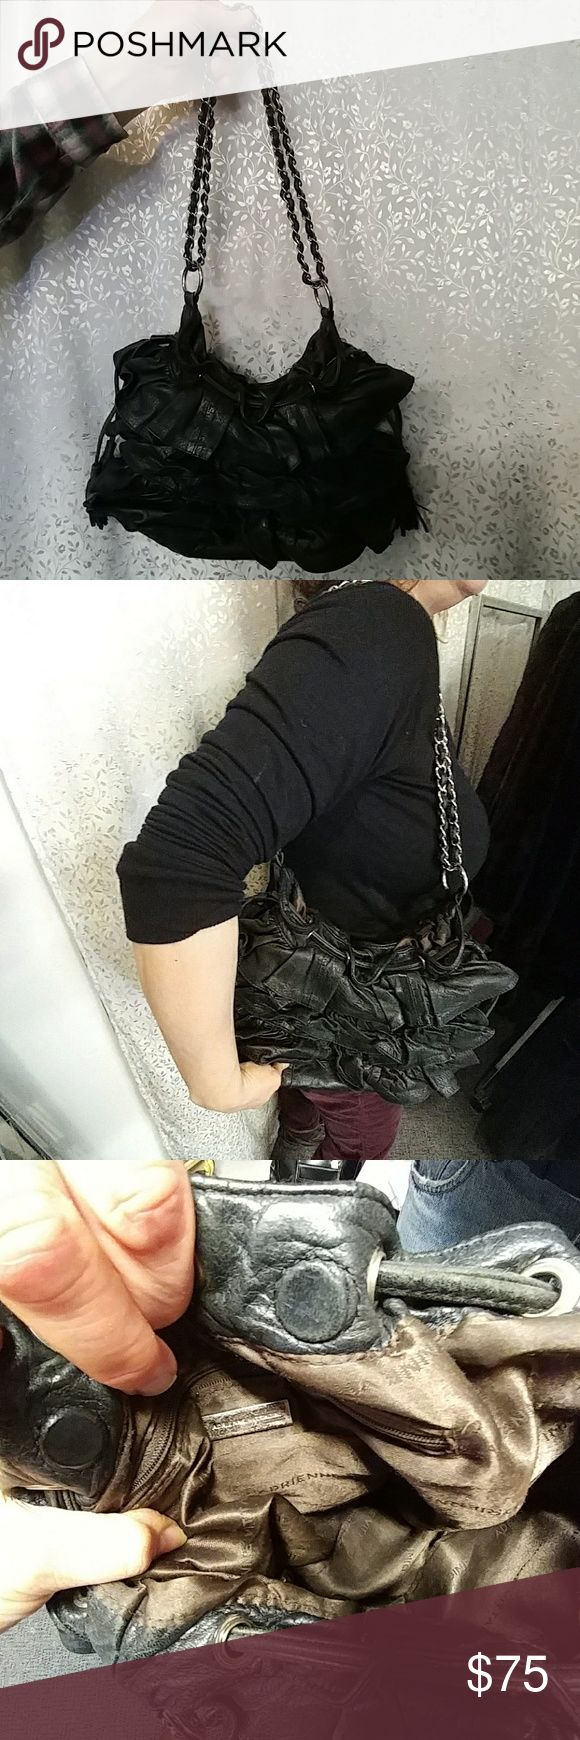 """Adrienne Vittadini black leather ruffled purse 12"""" L x 7"""" w a 12"""" chain.  Beautiful lining.  Tassels on each side. Chain is silver.  One pocket inside w zipper.  Magnetic closure.  Great condition! Adrienne Vittadini Bags Shoulder Bags"""